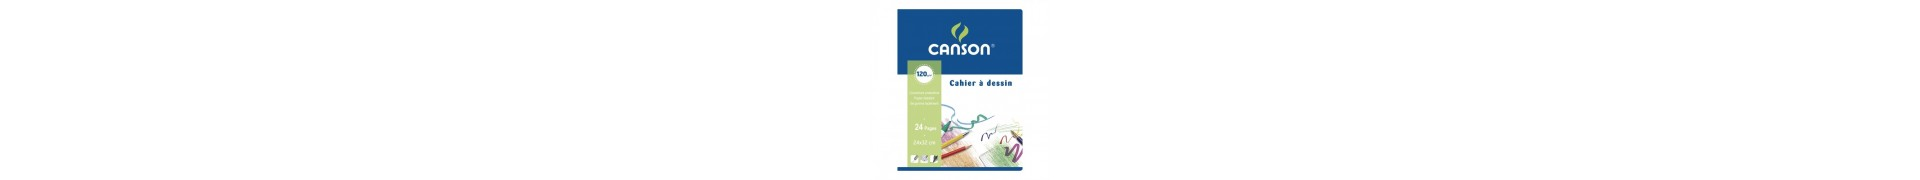 Cahier dessin CANSON  - 120g (24 p) - F:24 x 32 cm (C200027109) - Agraphes